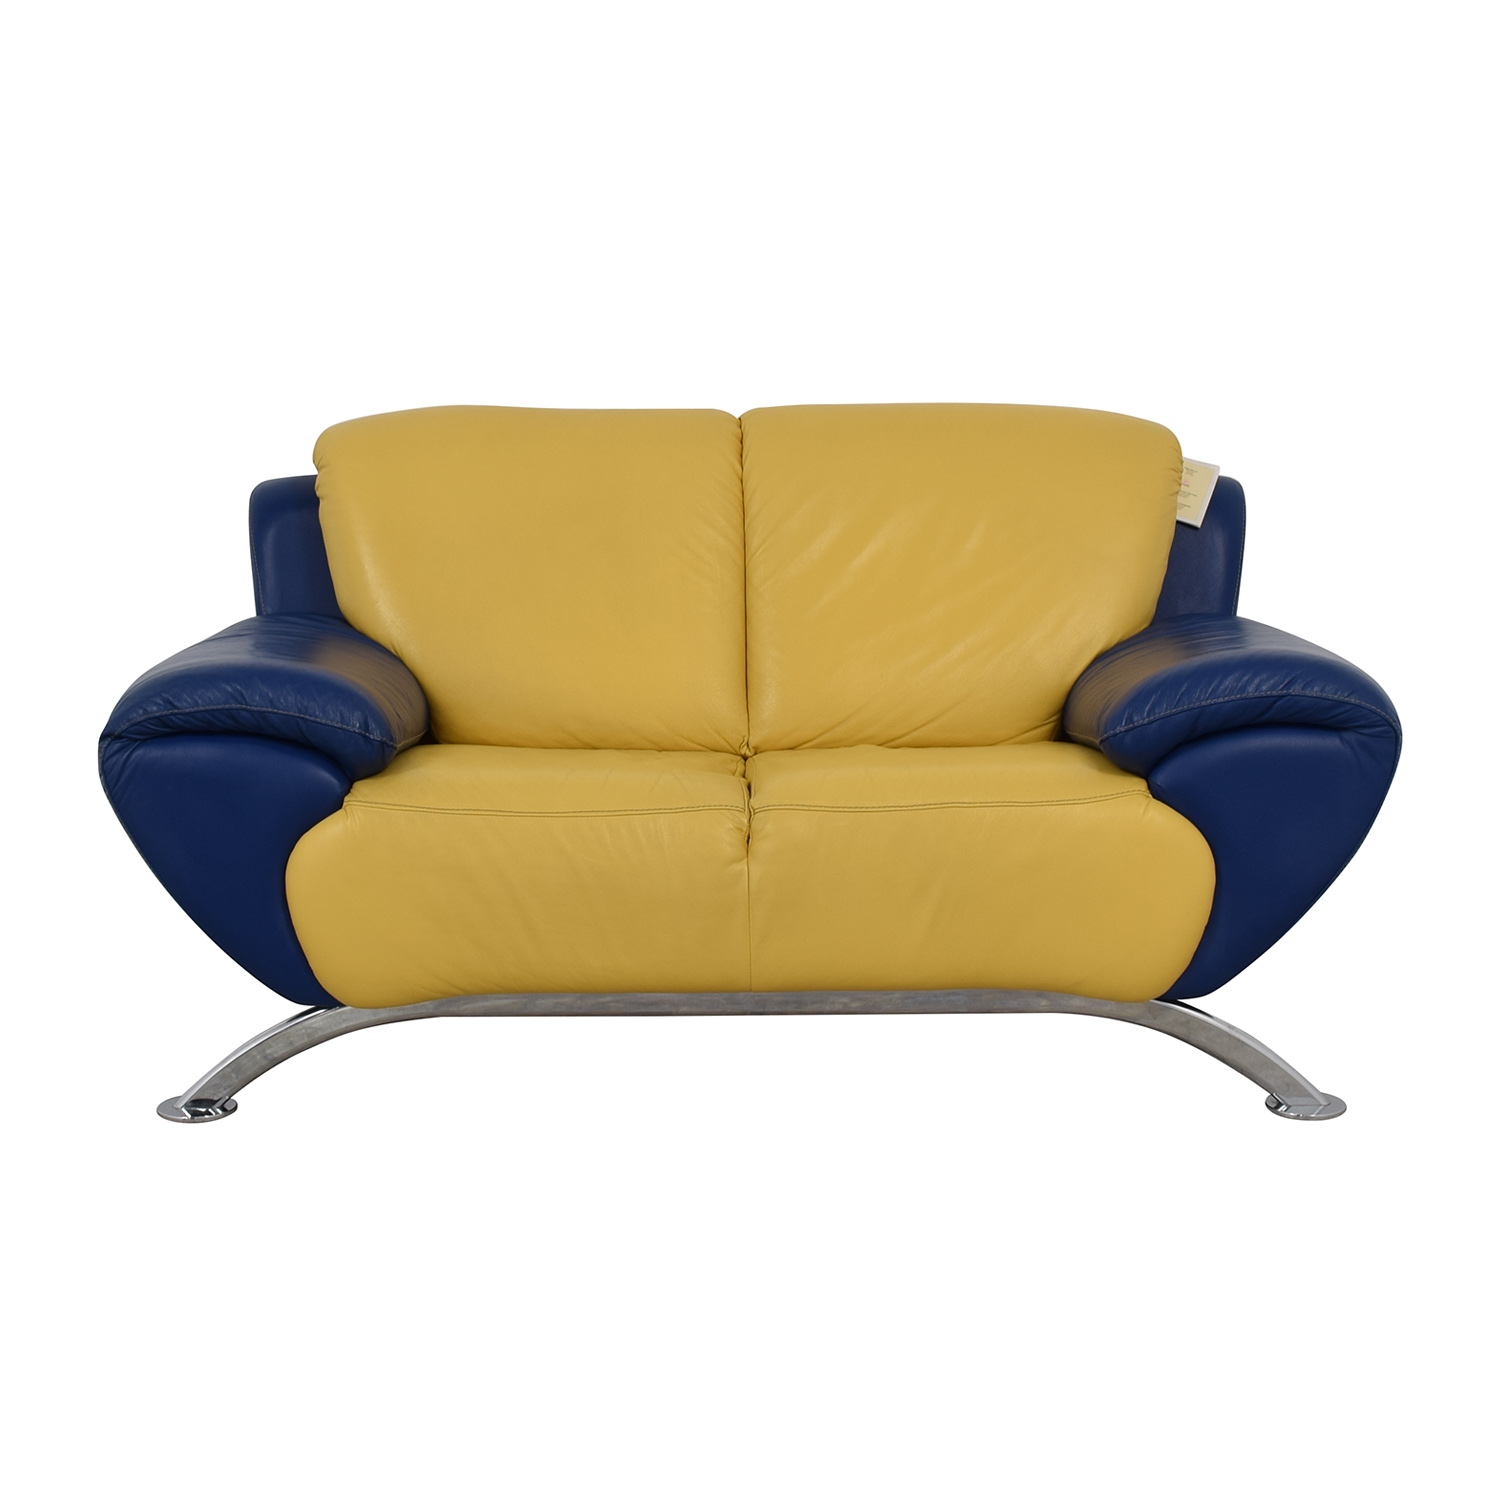 Marvelous 90 Off Satis Satis Modern Yellow And Blue Leather Loveseat Sofas Andrewgaddart Wooden Chair Designs For Living Room Andrewgaddartcom